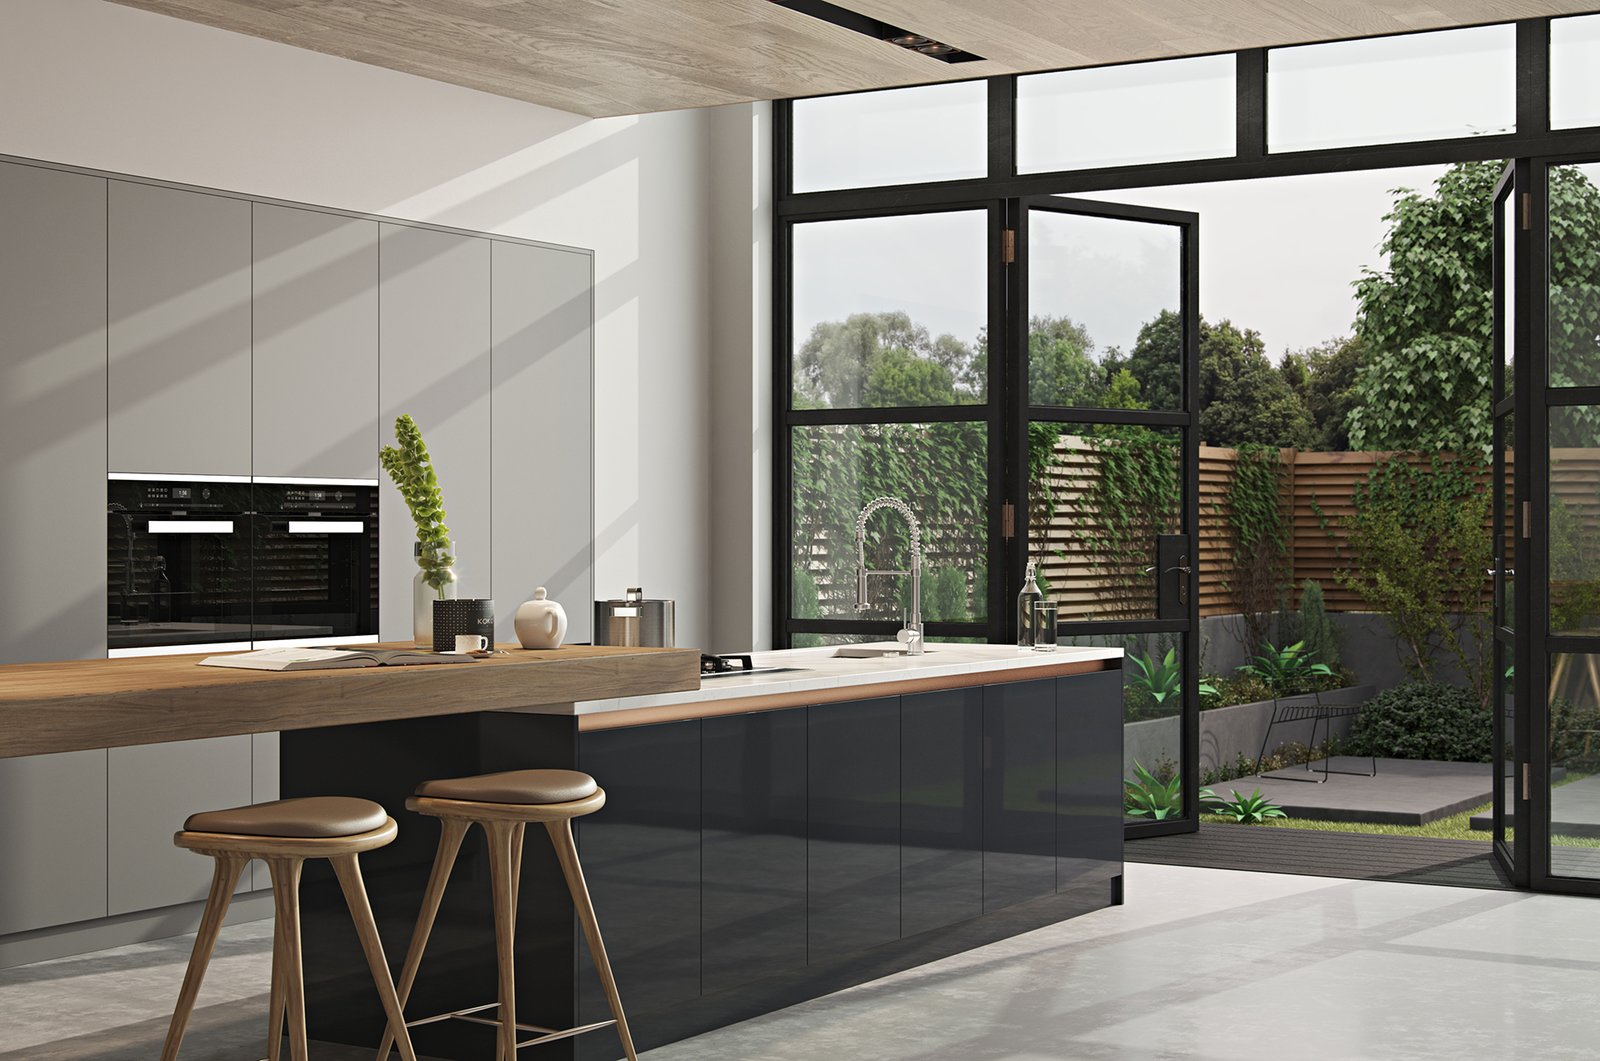 Kitchen, Marble Counter, Wood Cabinet, Laminate Cabinet, Recessed Lighting, Wall Oven, Concrete Floor, Undermount Sink, and Cooktops  Kitchen//Extension by Mitaka DImov from Kitchen